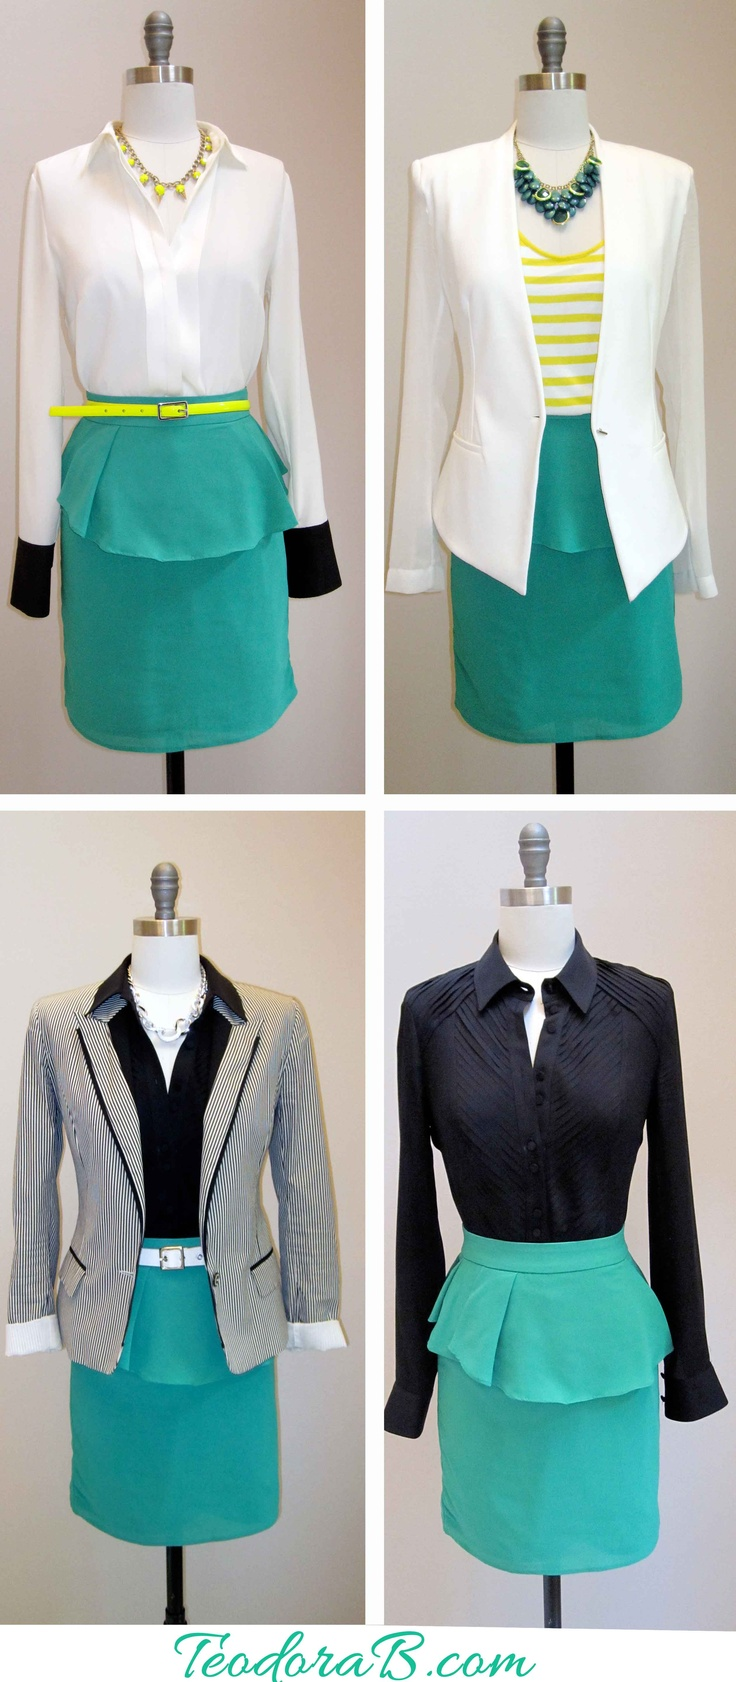 One skirt - sooooo many ways to style it for your business meeting. I especially like the last 2: Green Skirts, Skirt Addict, Neutral Colors, Fashion Styles, Neutral Skirt, Skirt Transformed, Office Skirts, Peplum Skirts